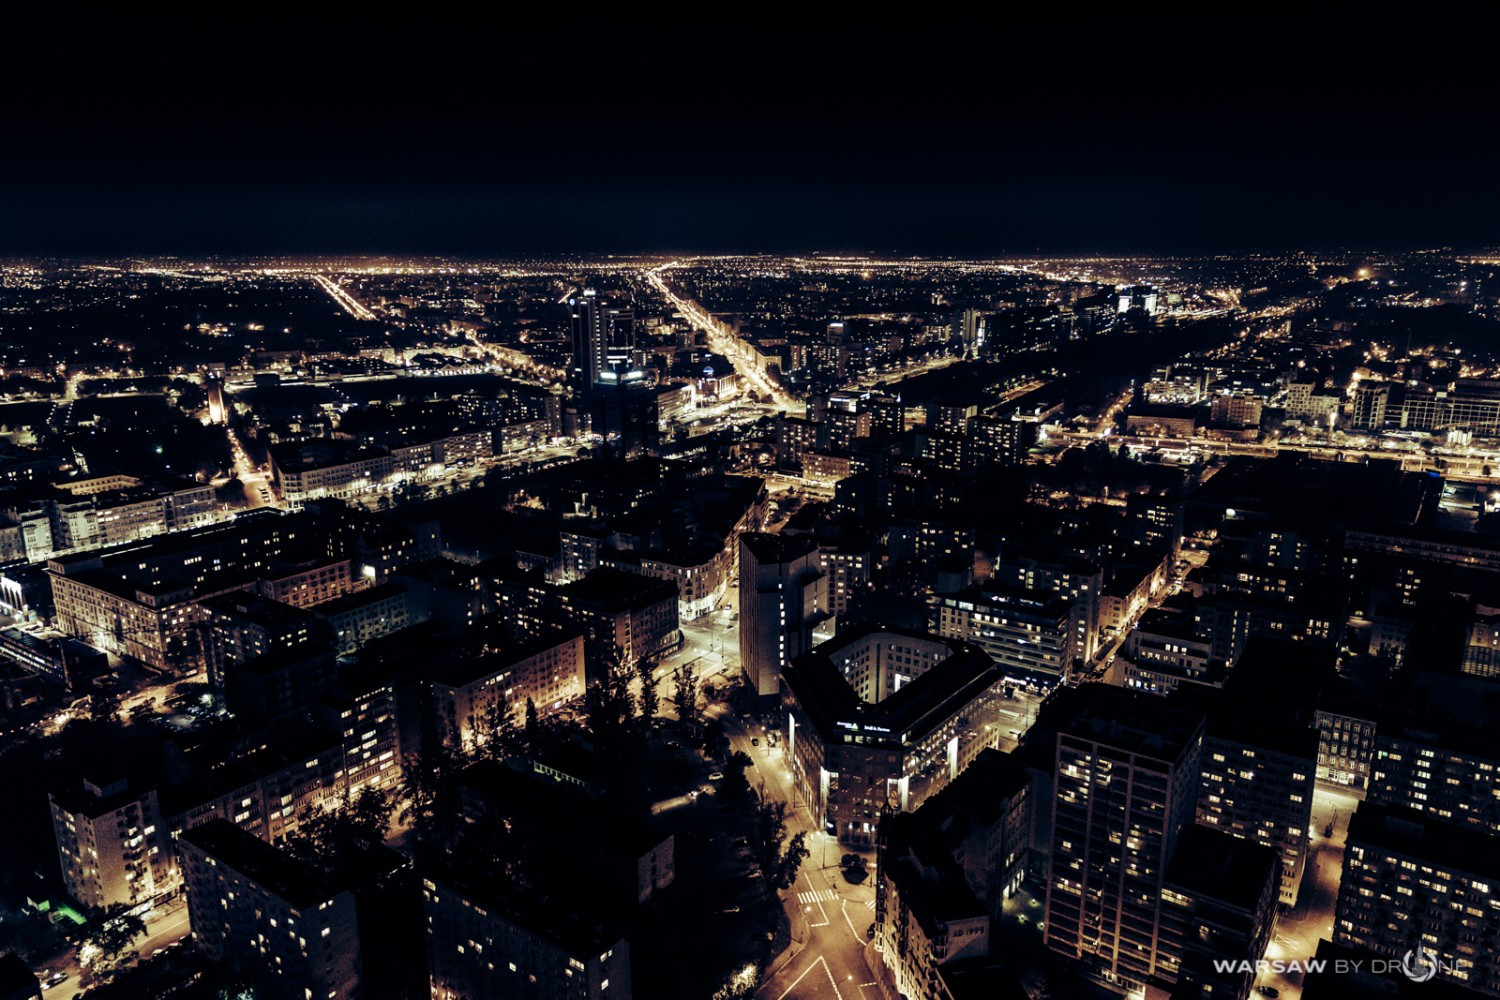 Warsaw by drone